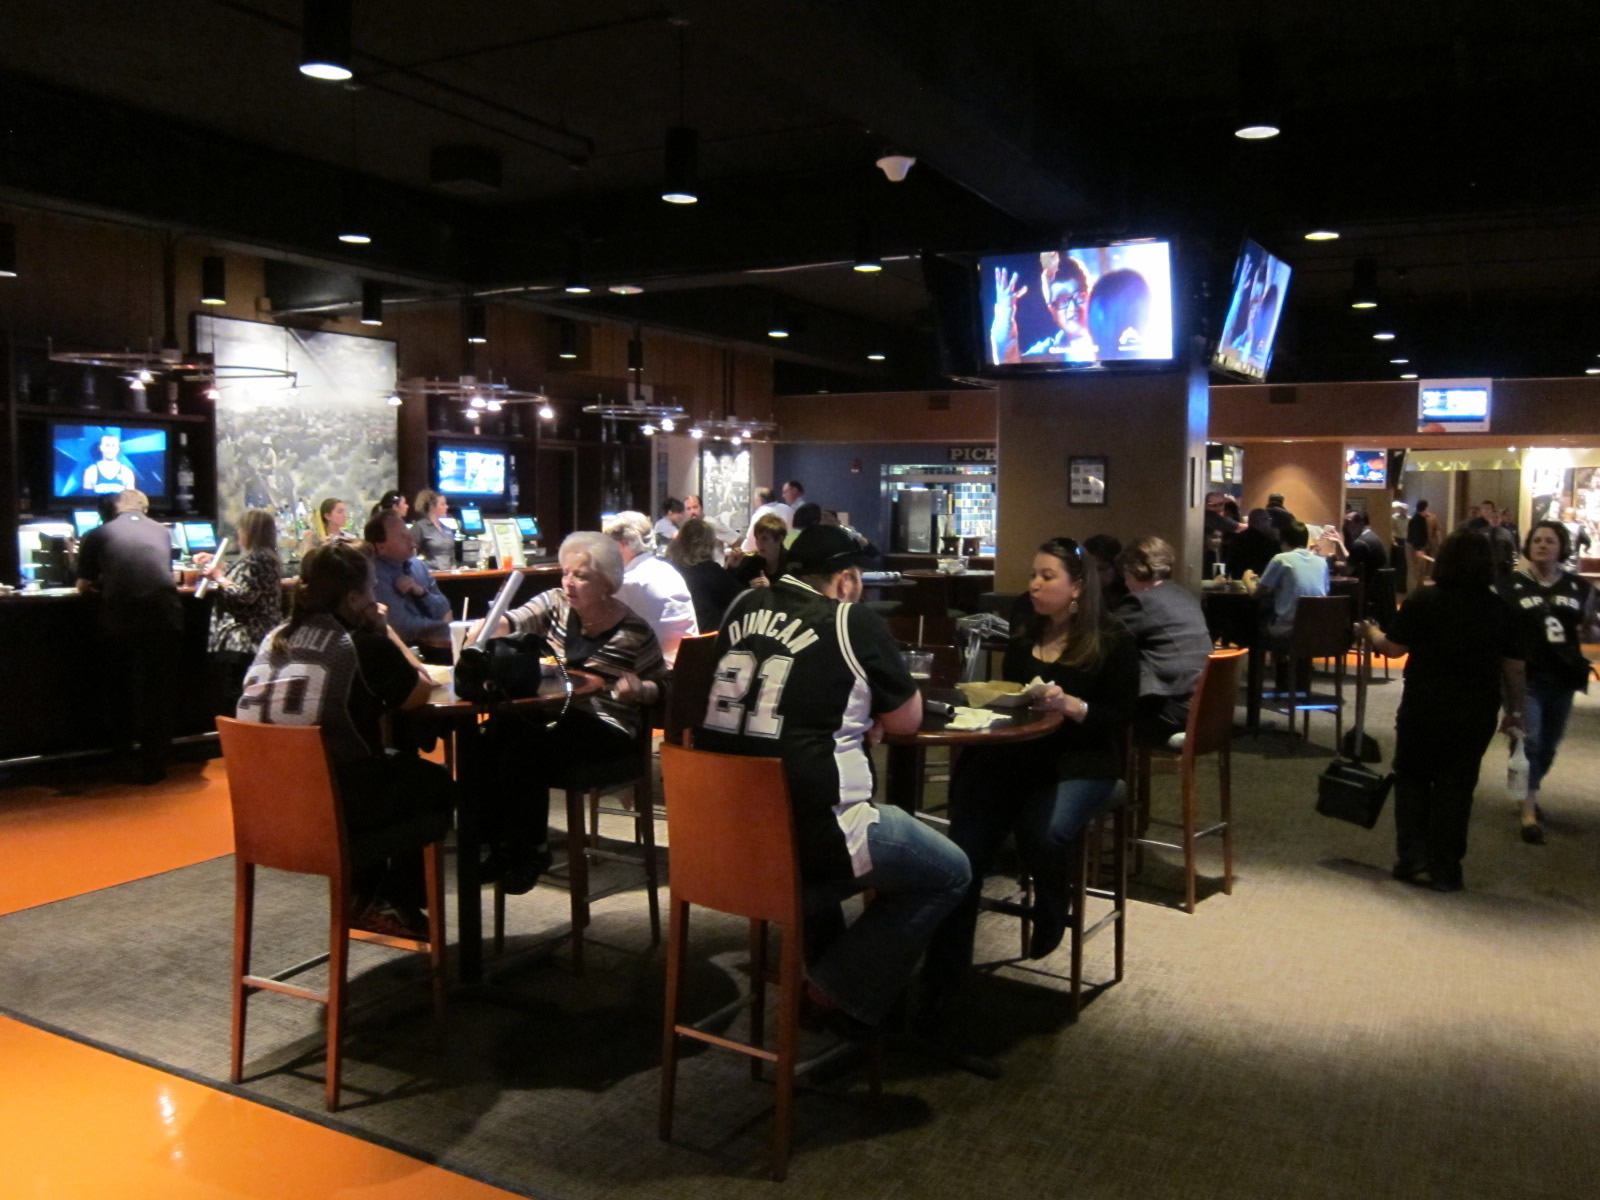 AT&T Center Club Concourse